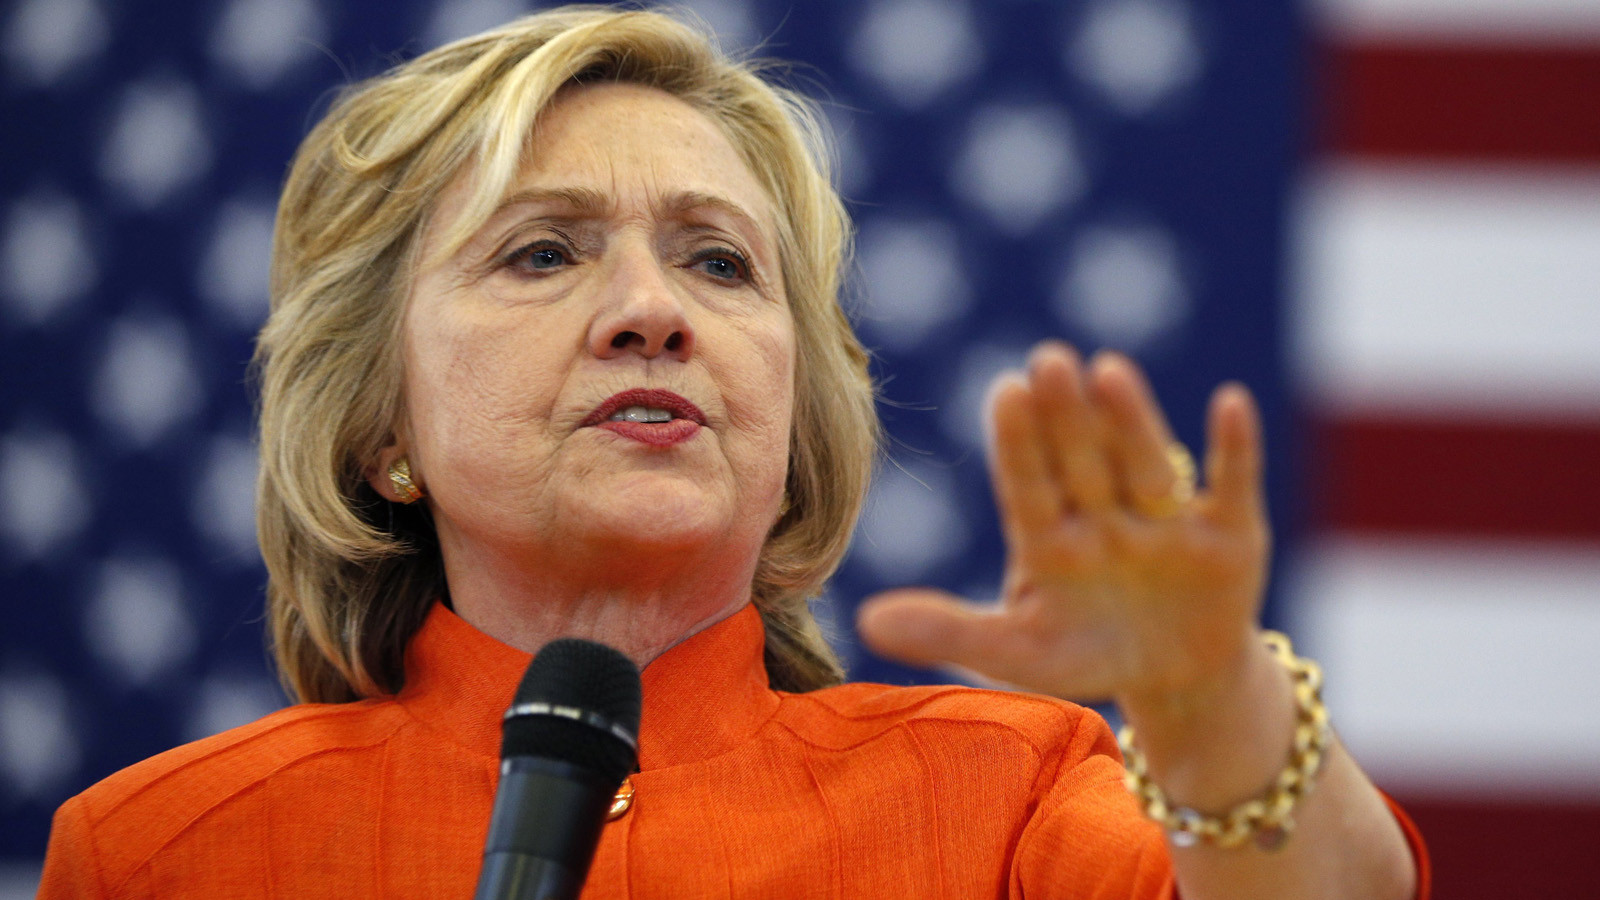 Democrats defend Hillary Clinton's use of private email server